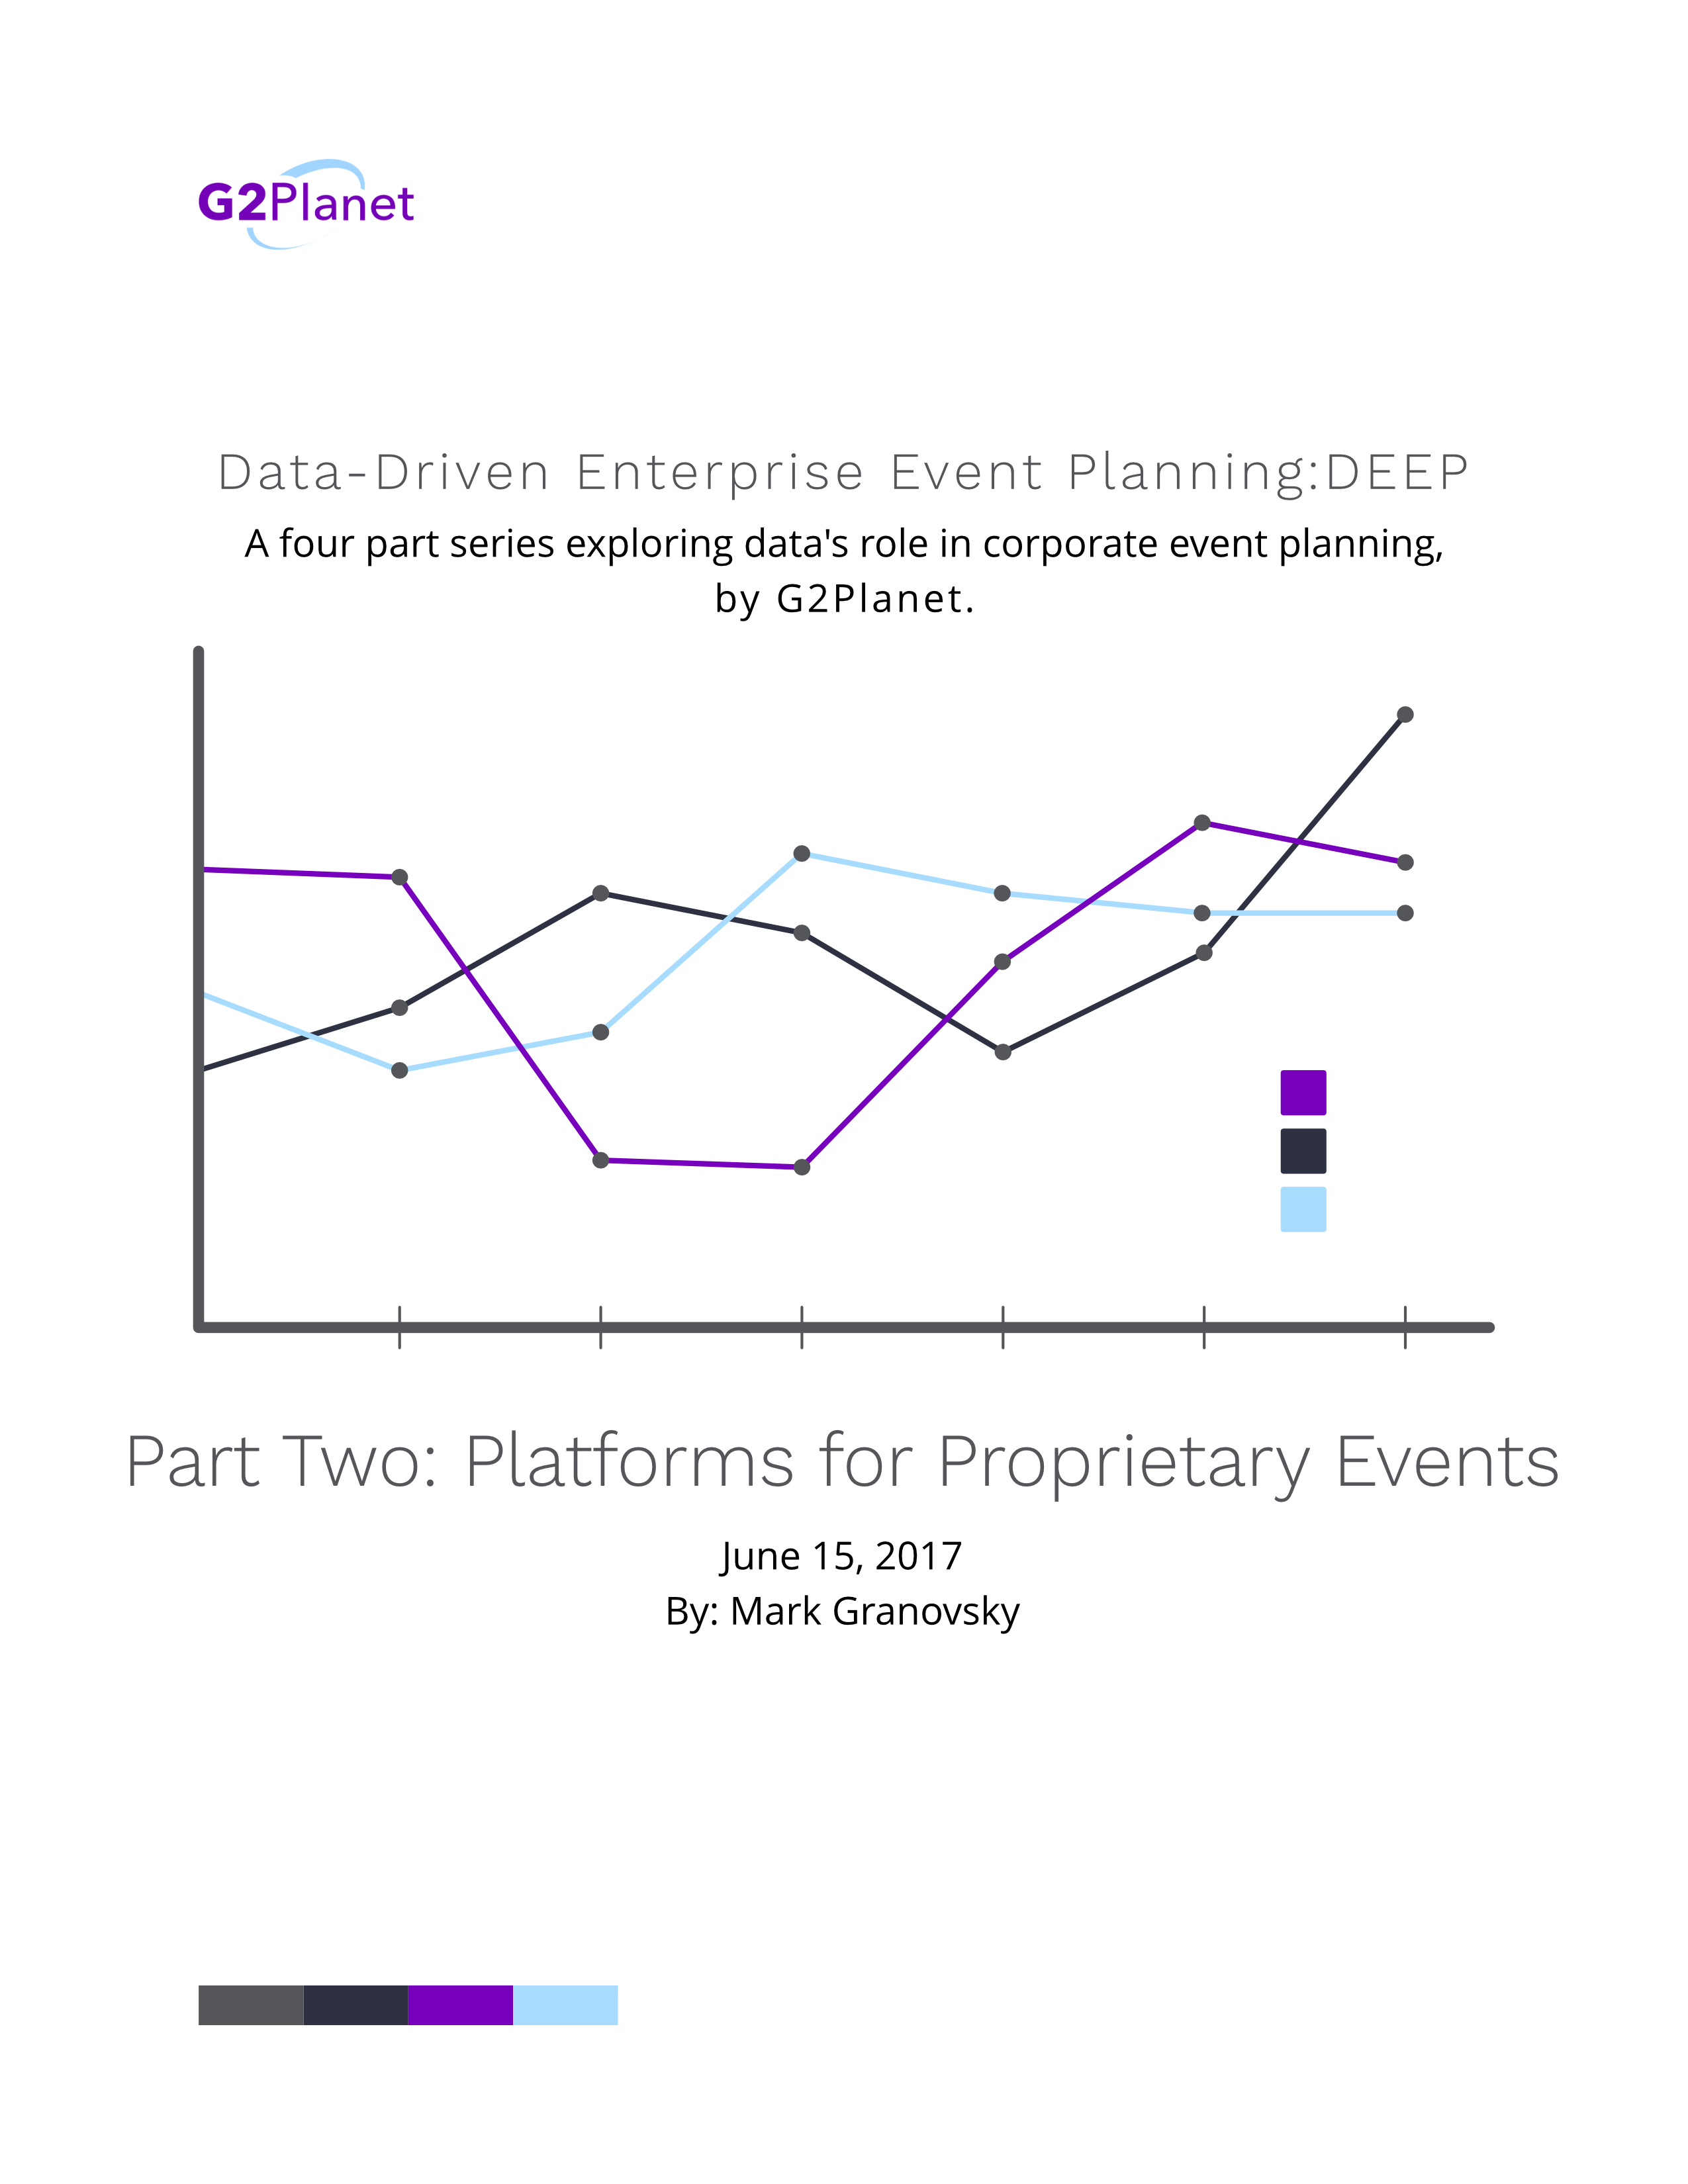 Enterprise Event Management Whitepaper: Platforms for Proprietary Events